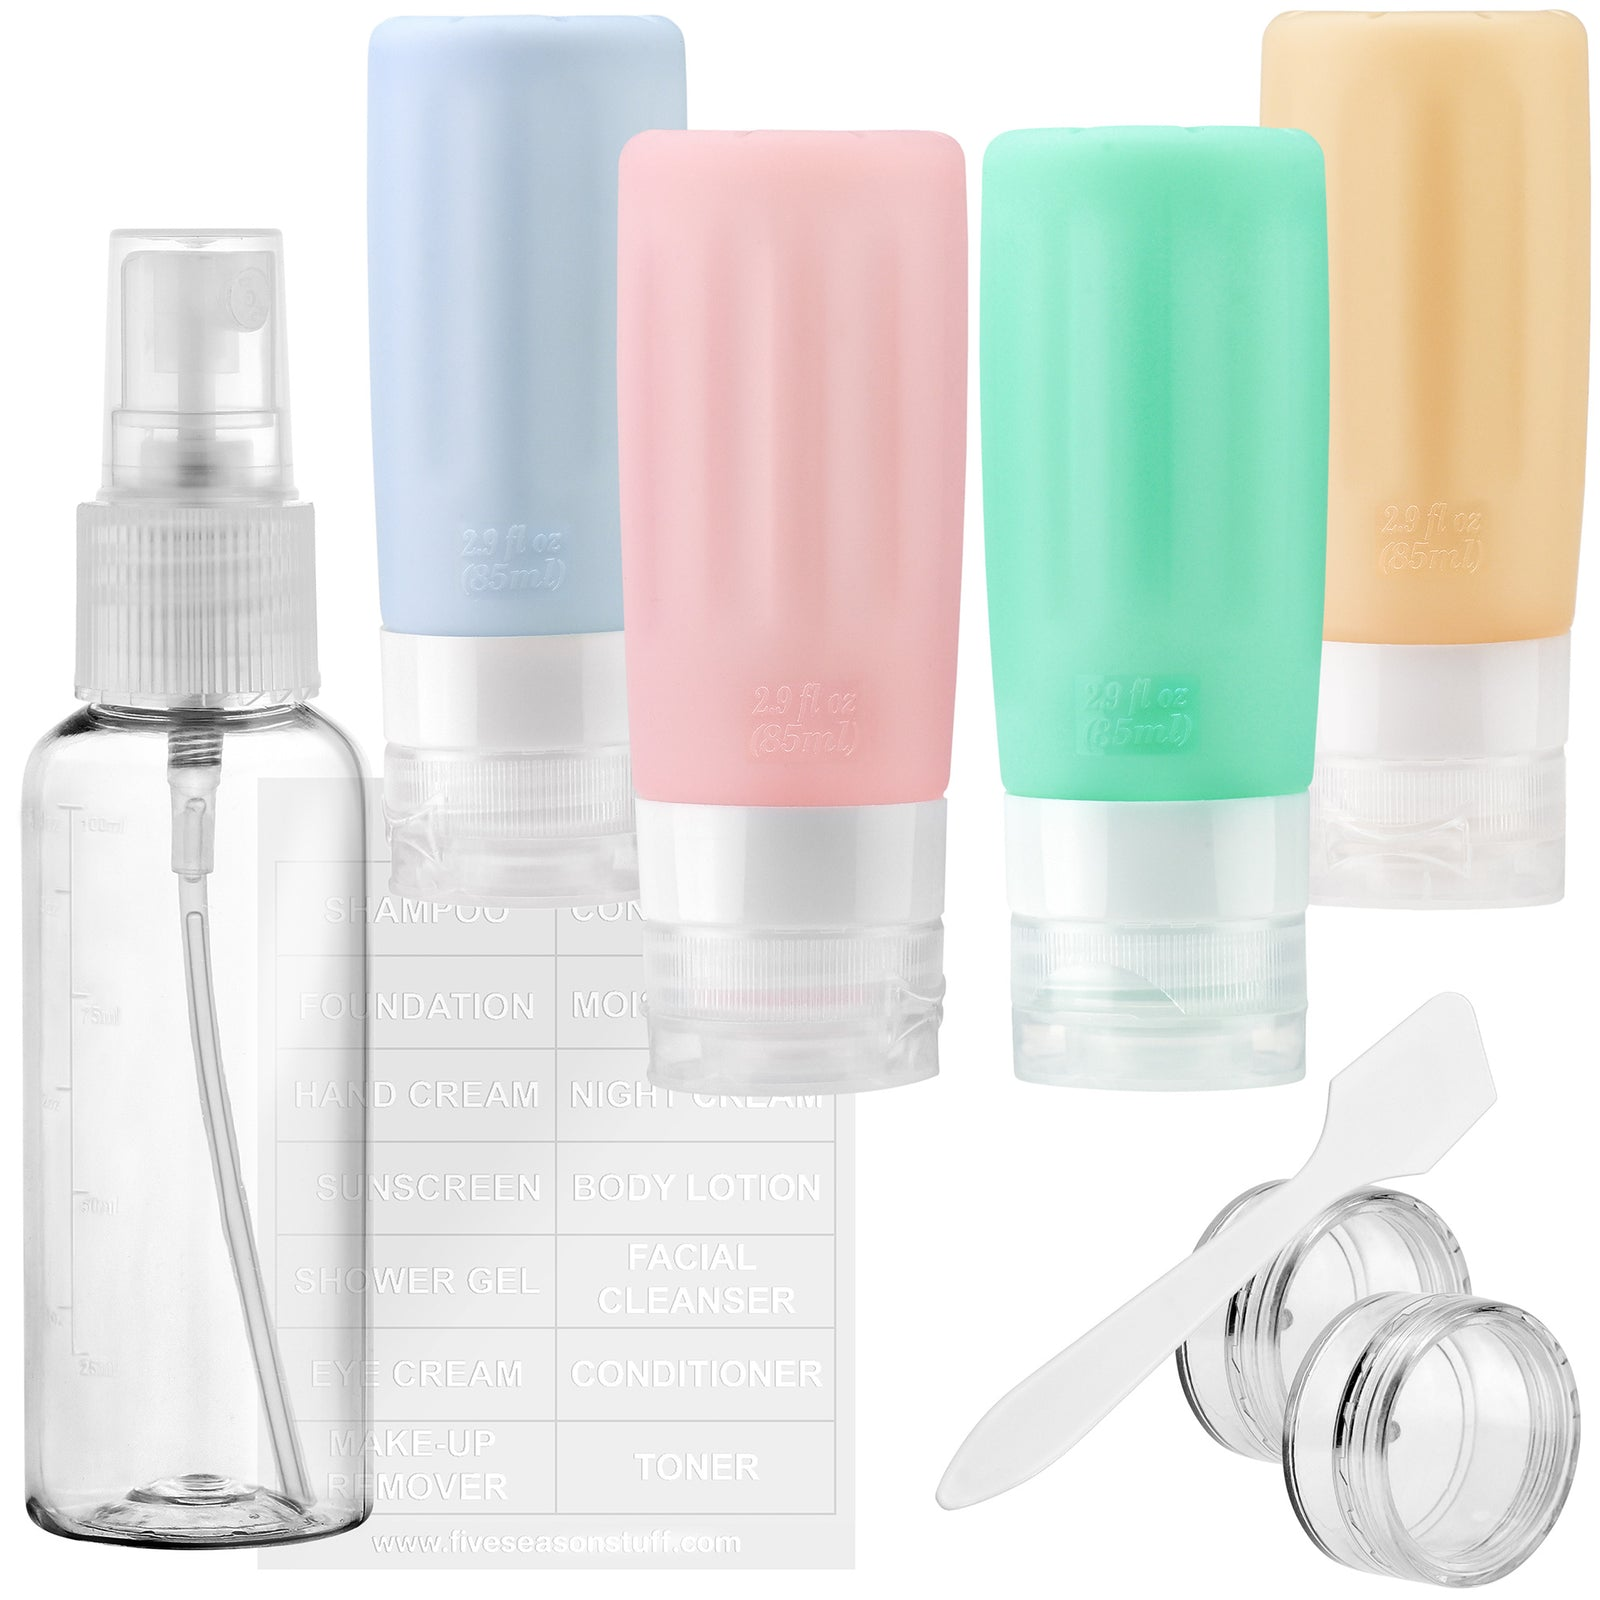 FiveSeasonStuff TSA Approved Silicone Leak Proof Travel Squeeze Bottles and Travel Spray Bottle with TSA Toiletry Bag (7 Pack) Warm Pastel CheerfulSunny Pastel (Dusty Blue, Dusty Pink, Aqua Green & Apricot)